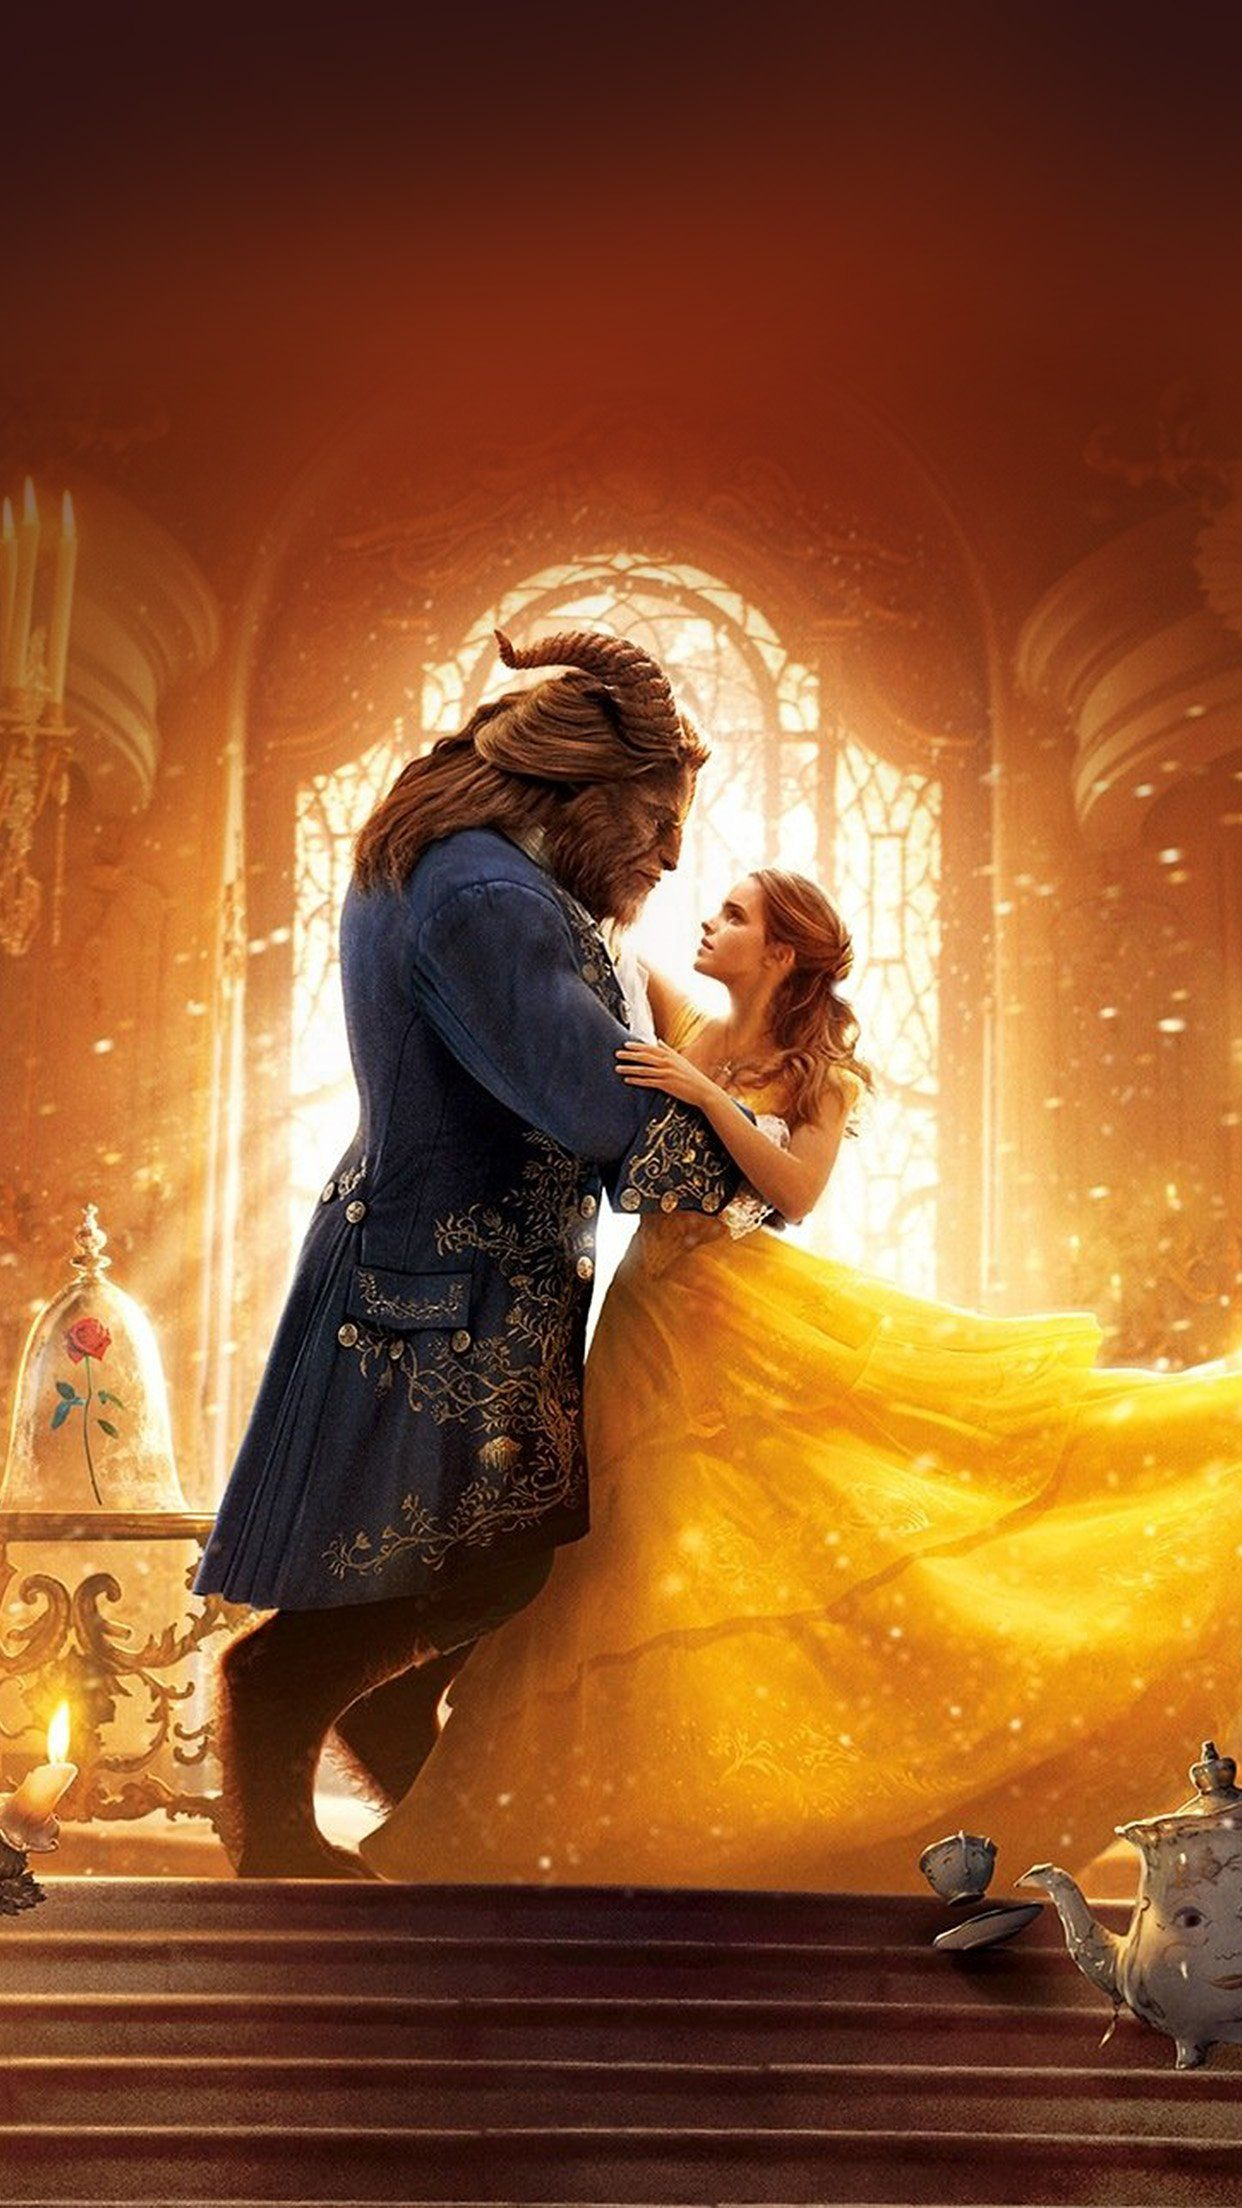 Beauty And The Beast Iphone Wallpapers Top Free Beauty And